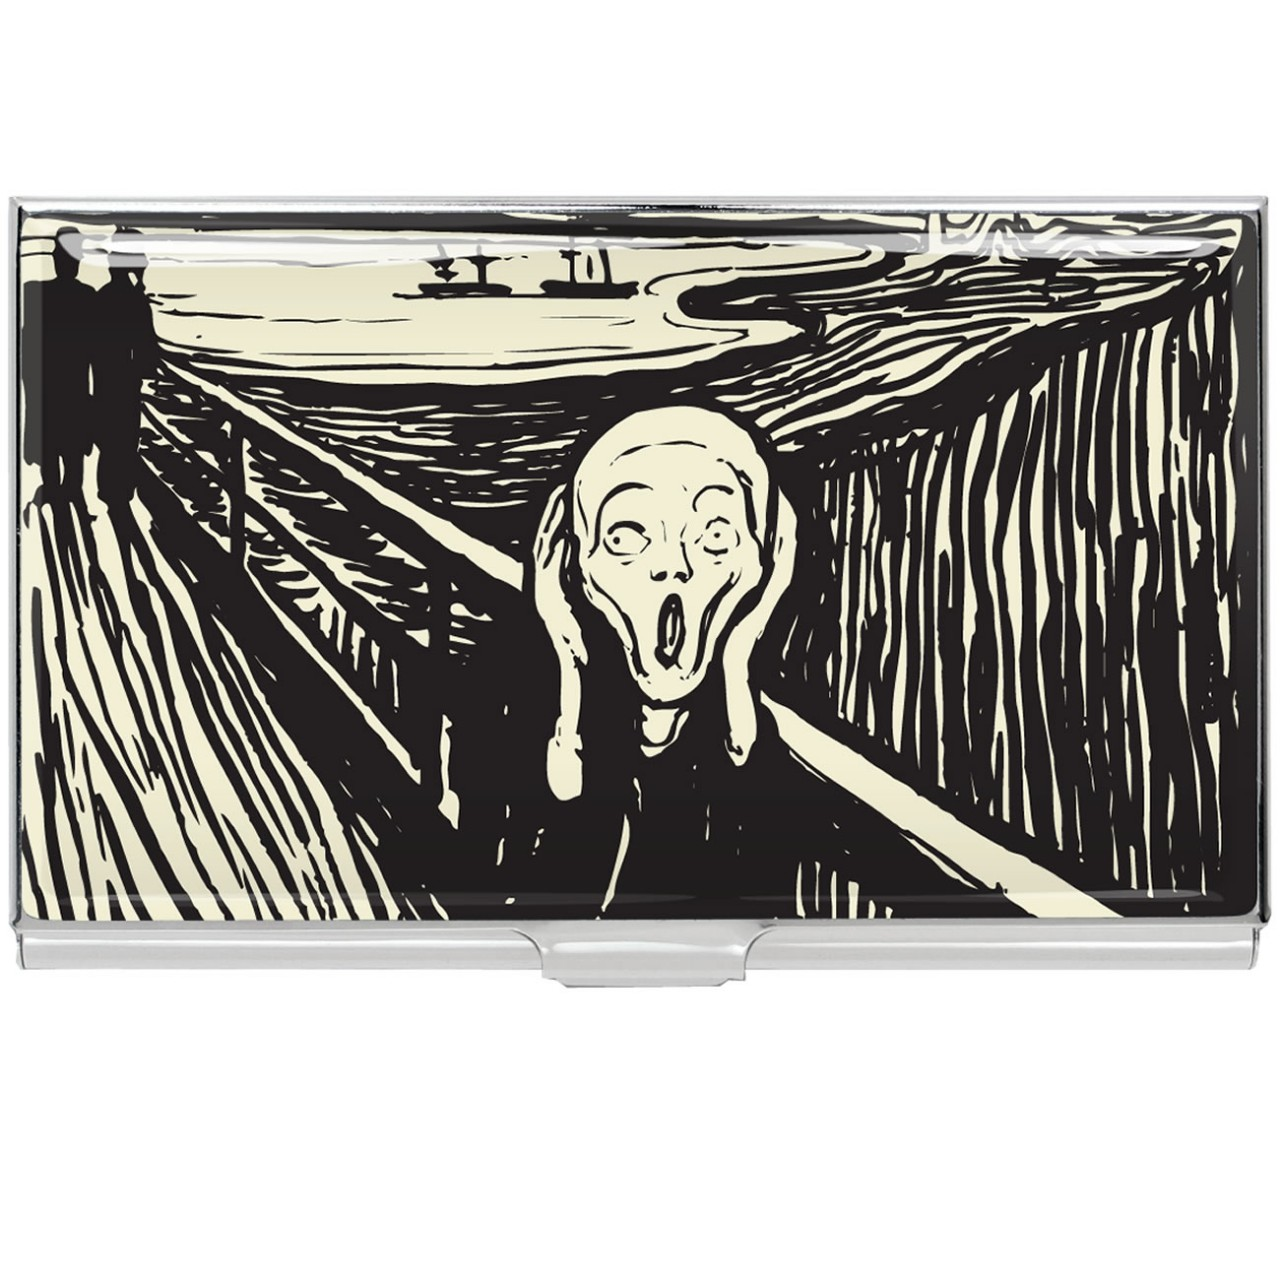 ACME 'THE CRY' Edward Munch Card Case